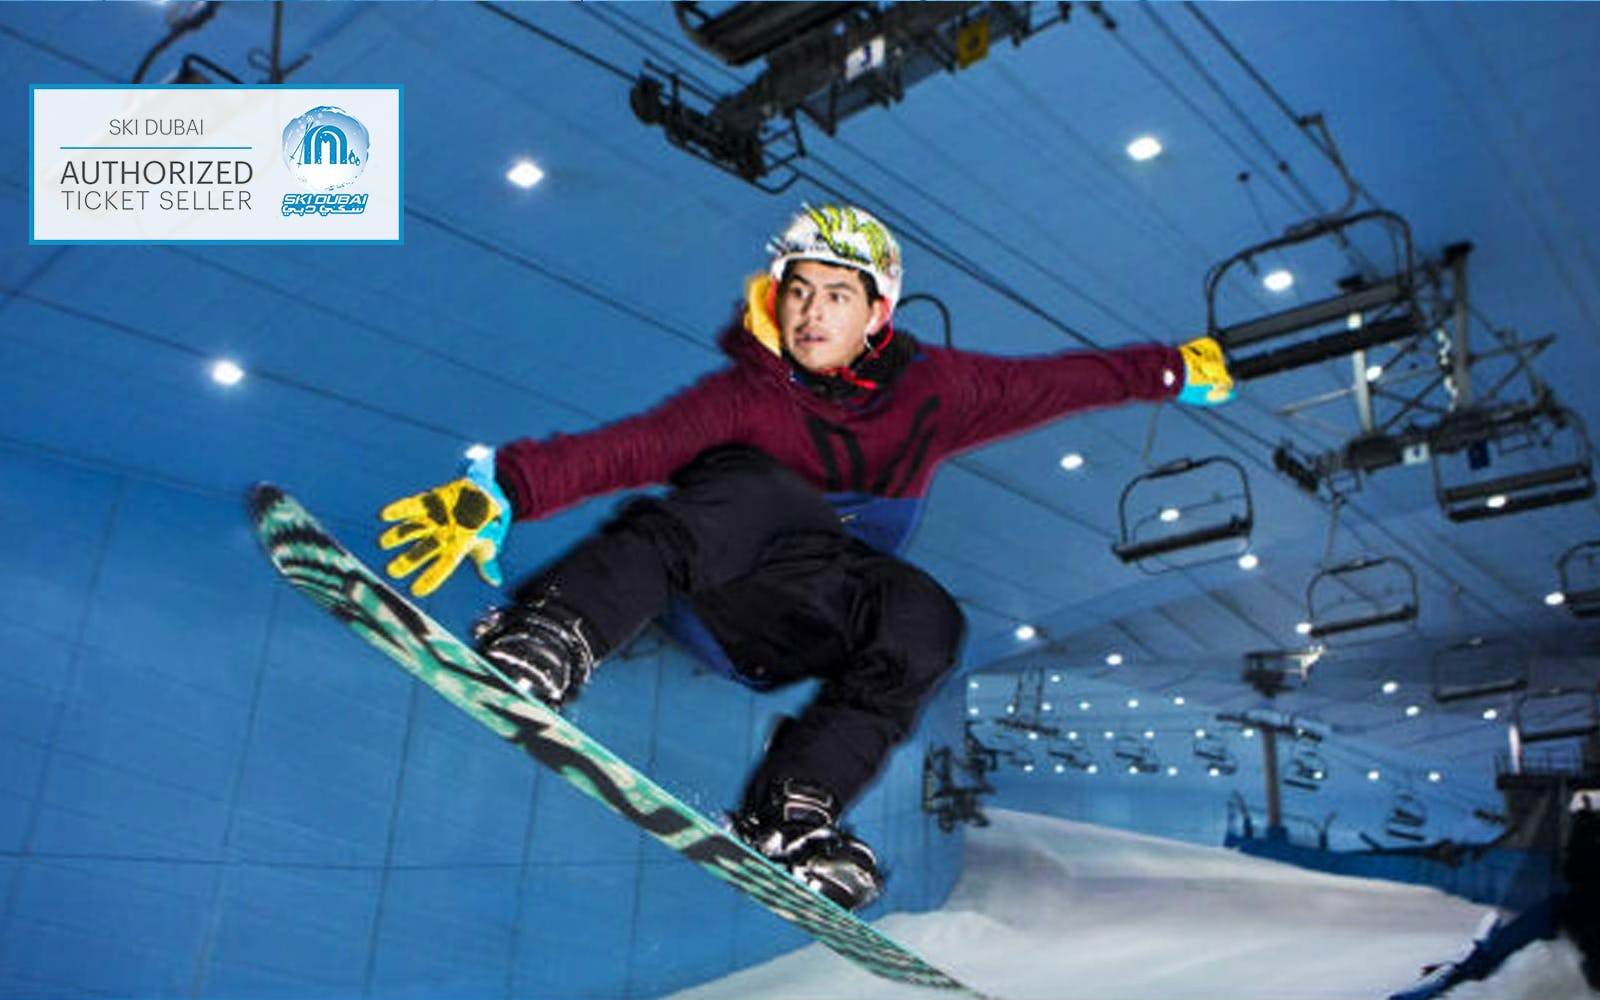 ski dubai: 2 hour skiing session-2